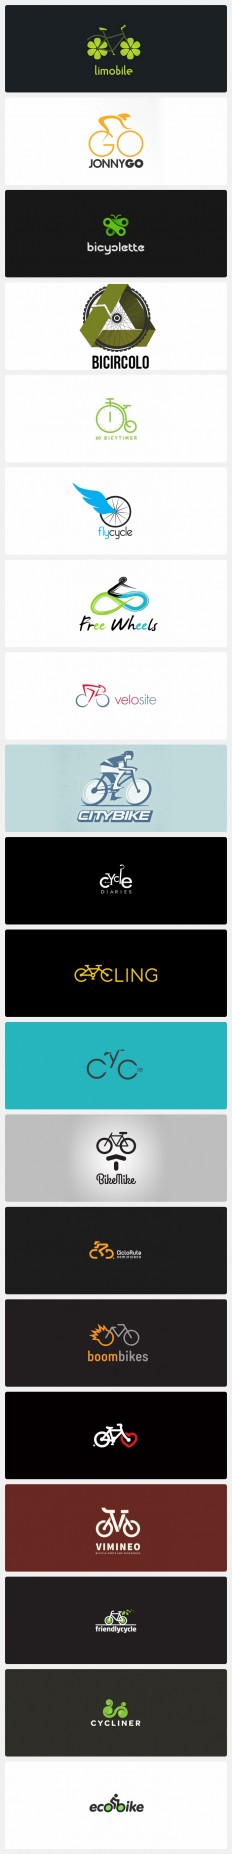 Creative Bicycle Logo Design Ideas on Inspirationde